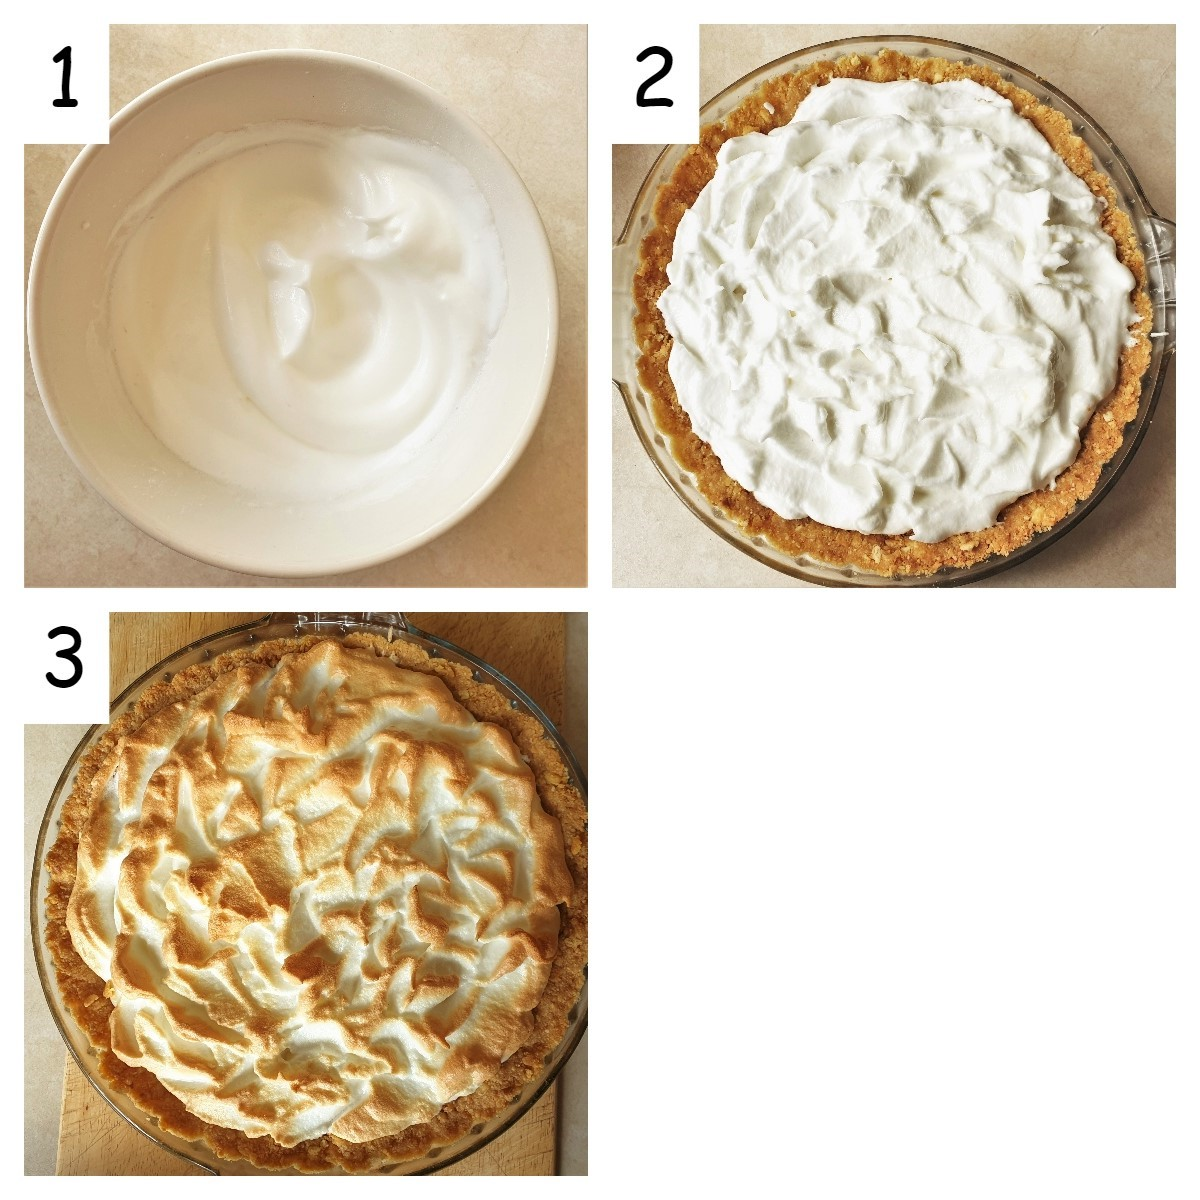 Collage of three images showing the meringue topping being added to the pie and browned in the oven.